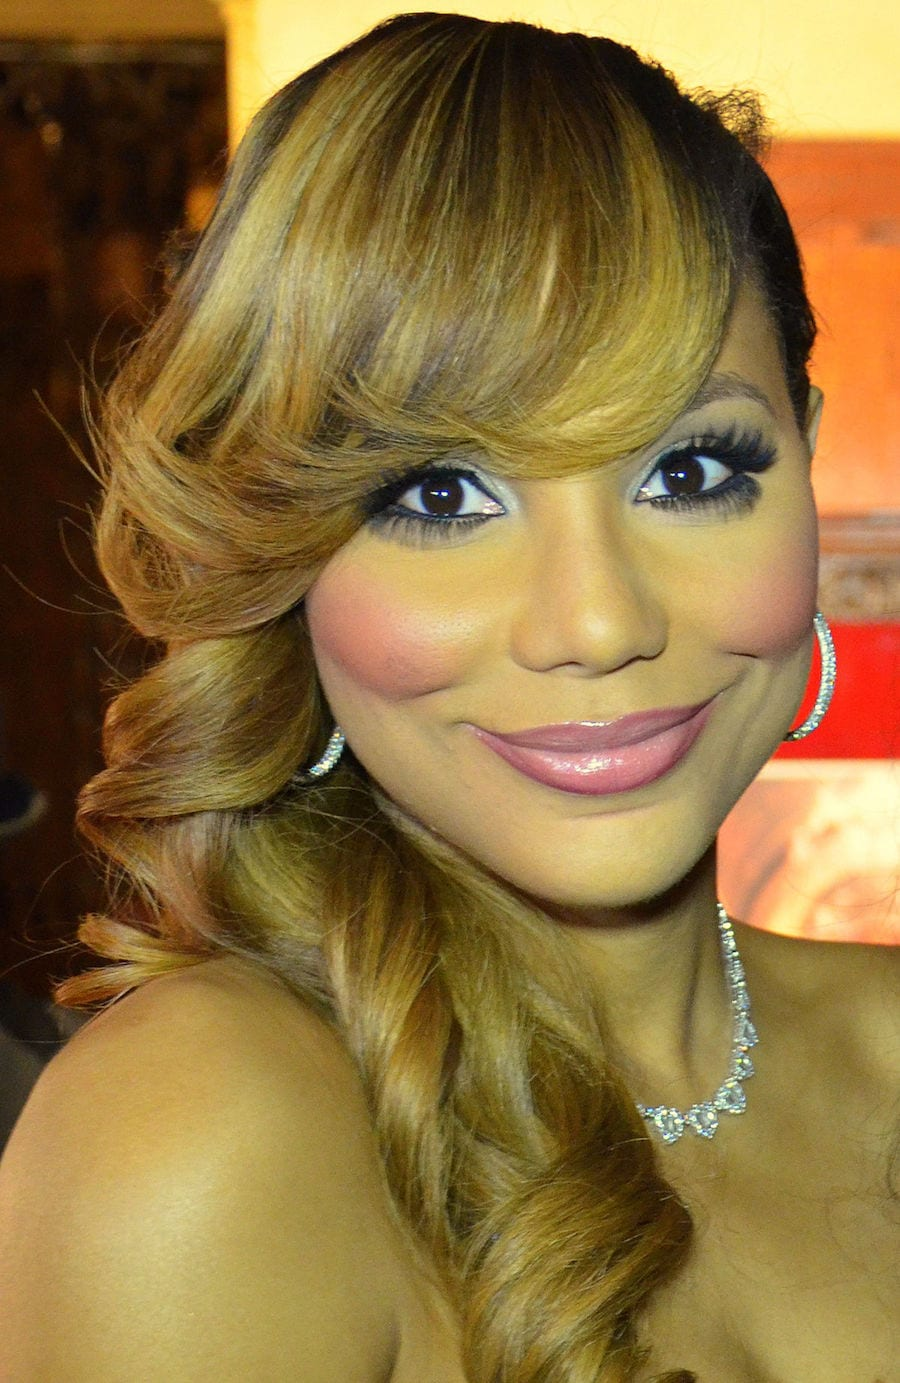 UPDATED: Tamar Braxton refused entry to JR's; Caven releases statement